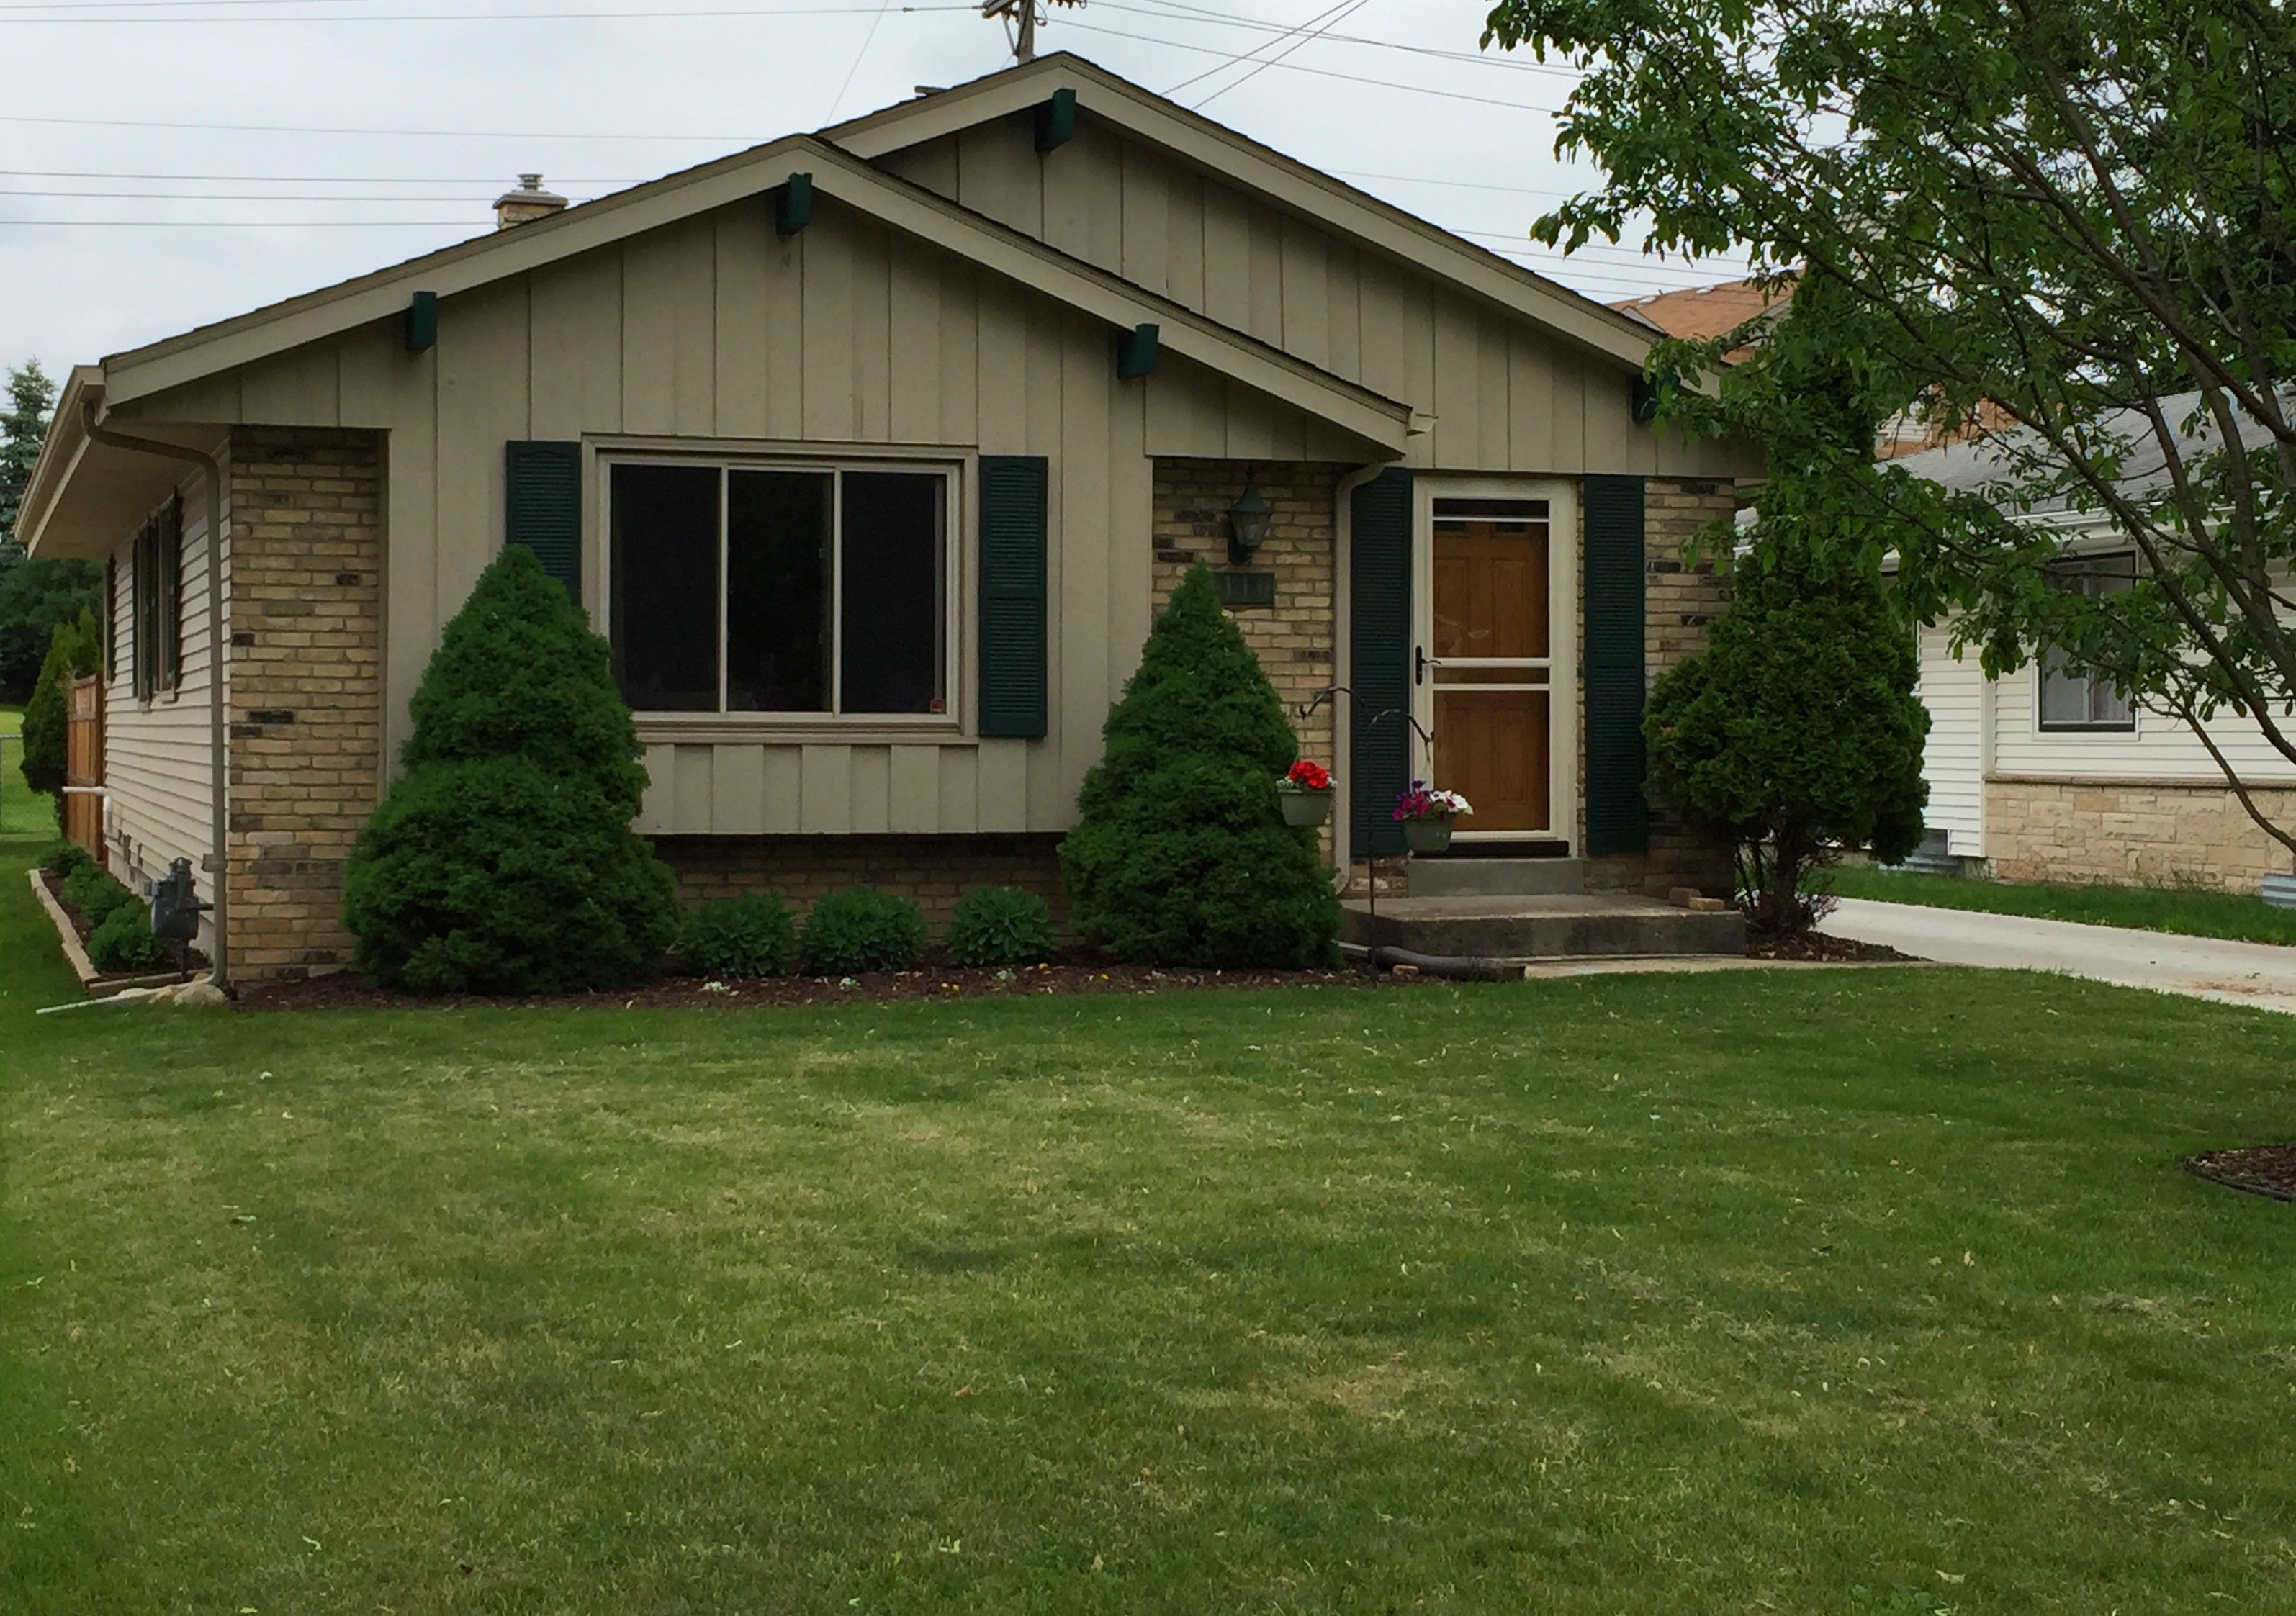 3 Bedroom, 1.5 Bath Wauwatosa Ranch with Many Upgrades for only $199,900!!!